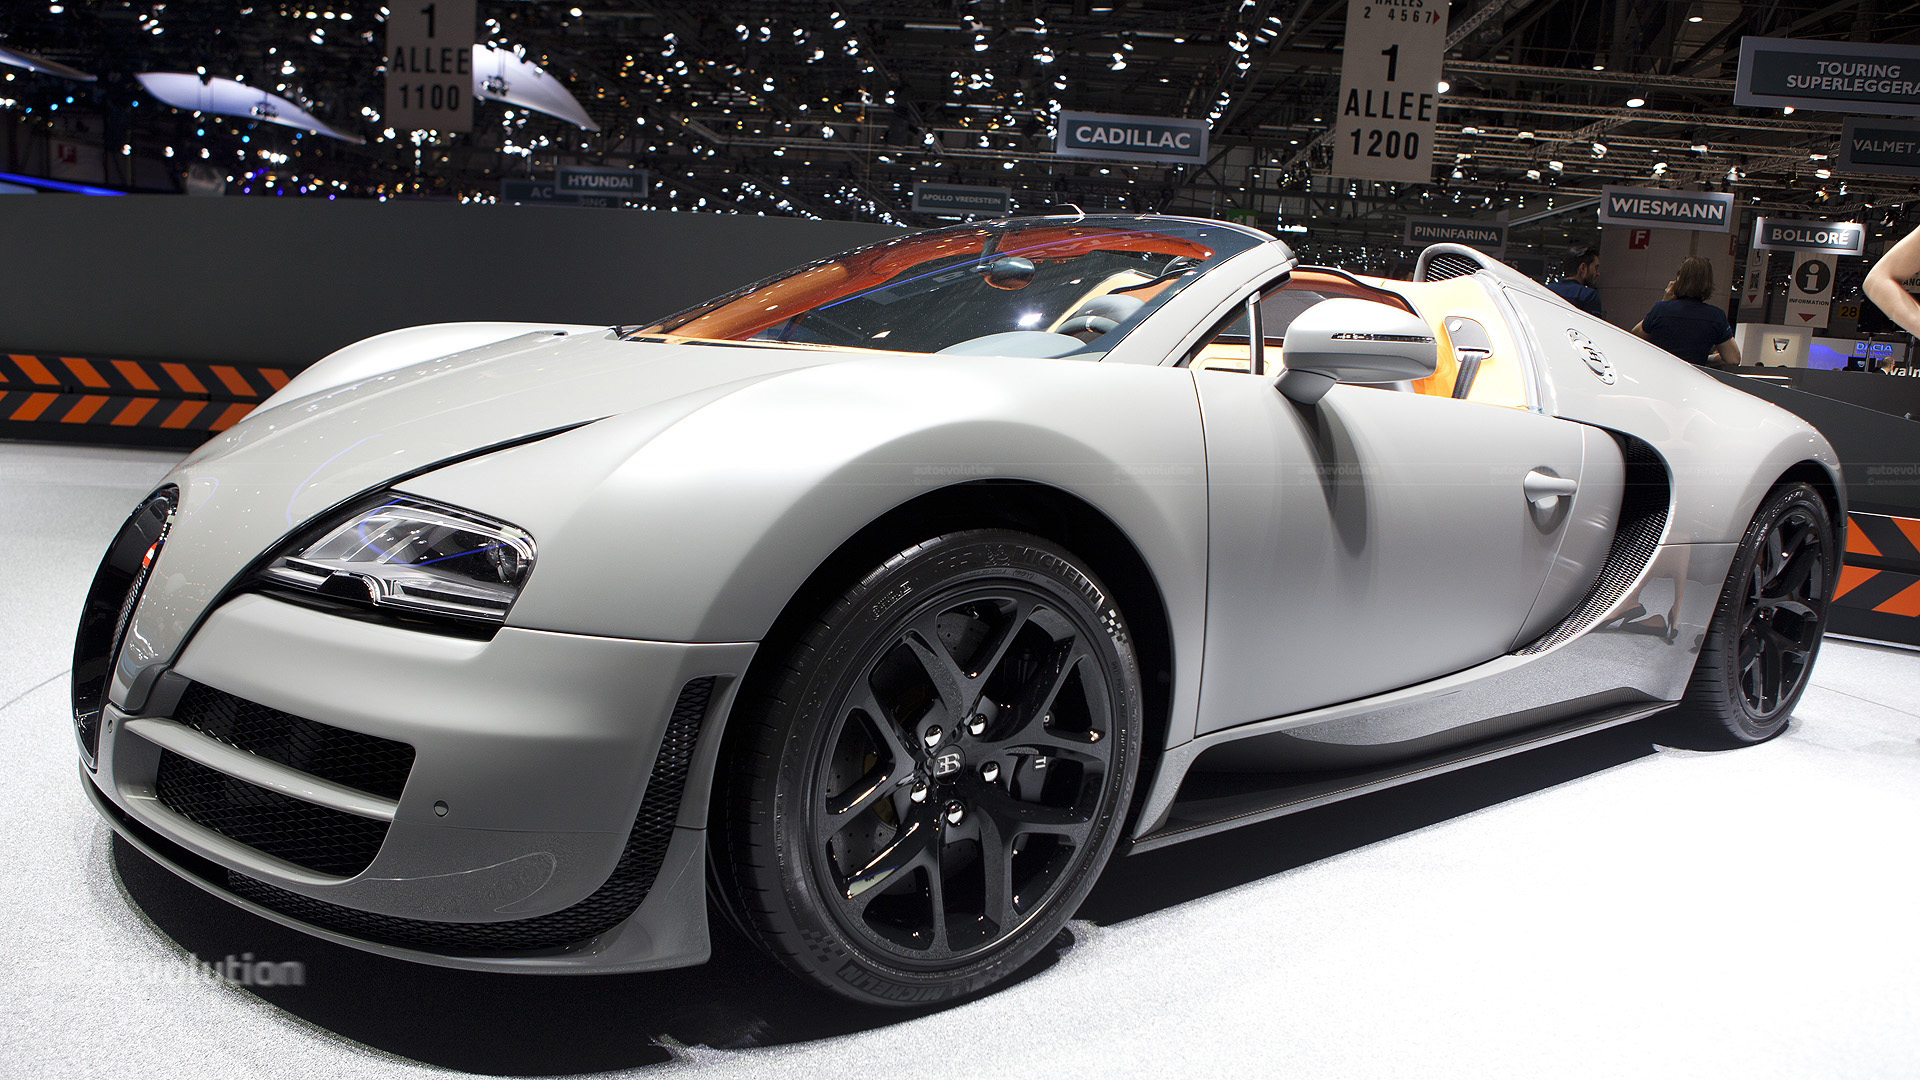 geneva 2012 bugatti veyron grand sport vitesse live. Black Bedroom Furniture Sets. Home Design Ideas